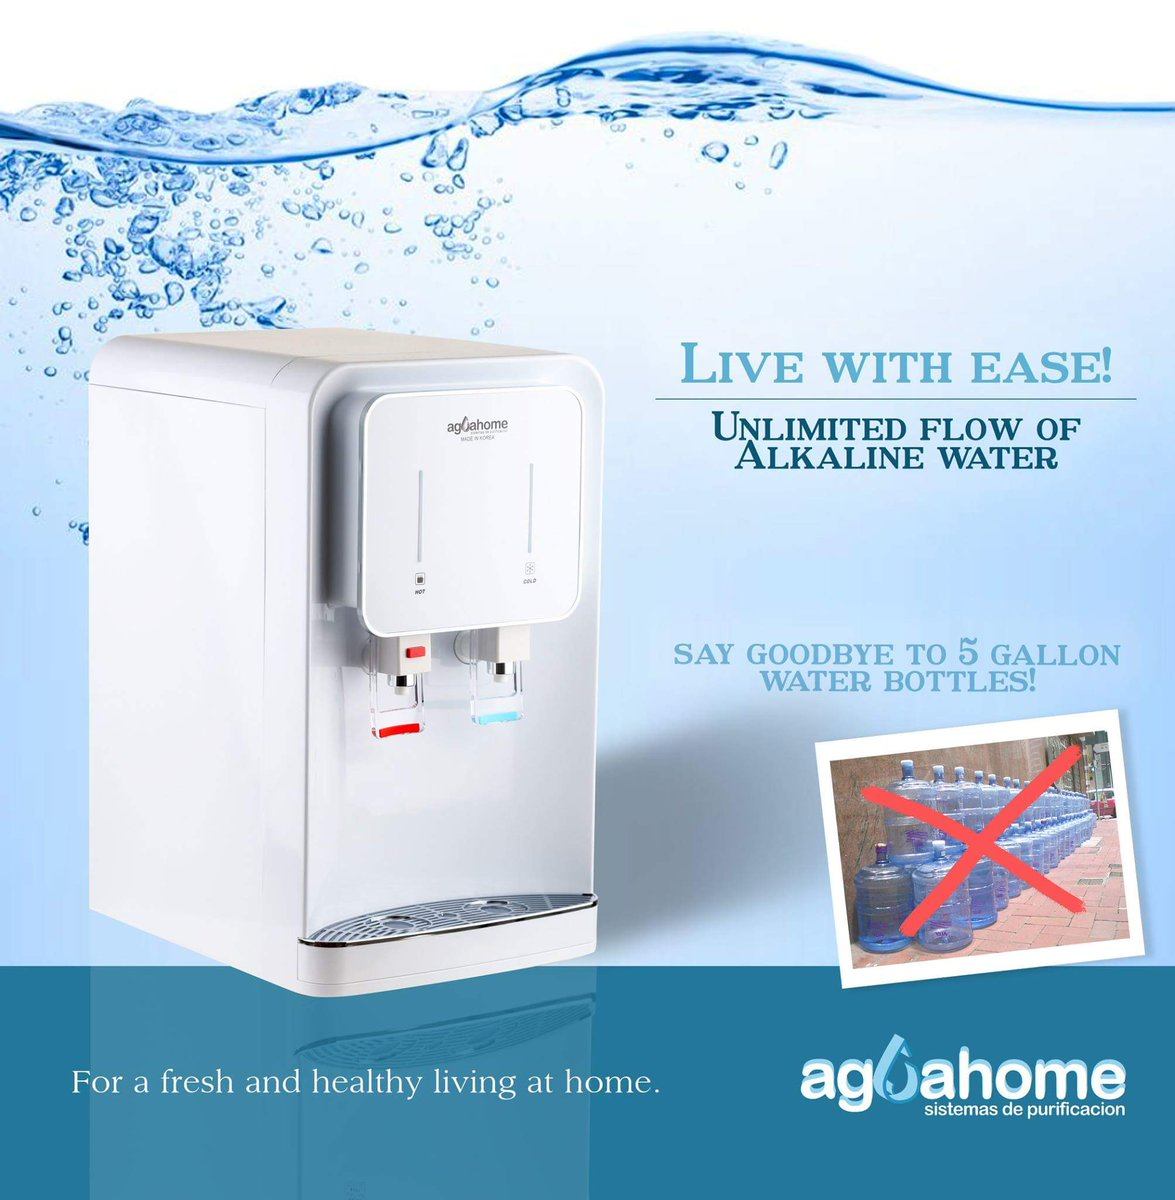 Aguahome Philippines on Twitter: